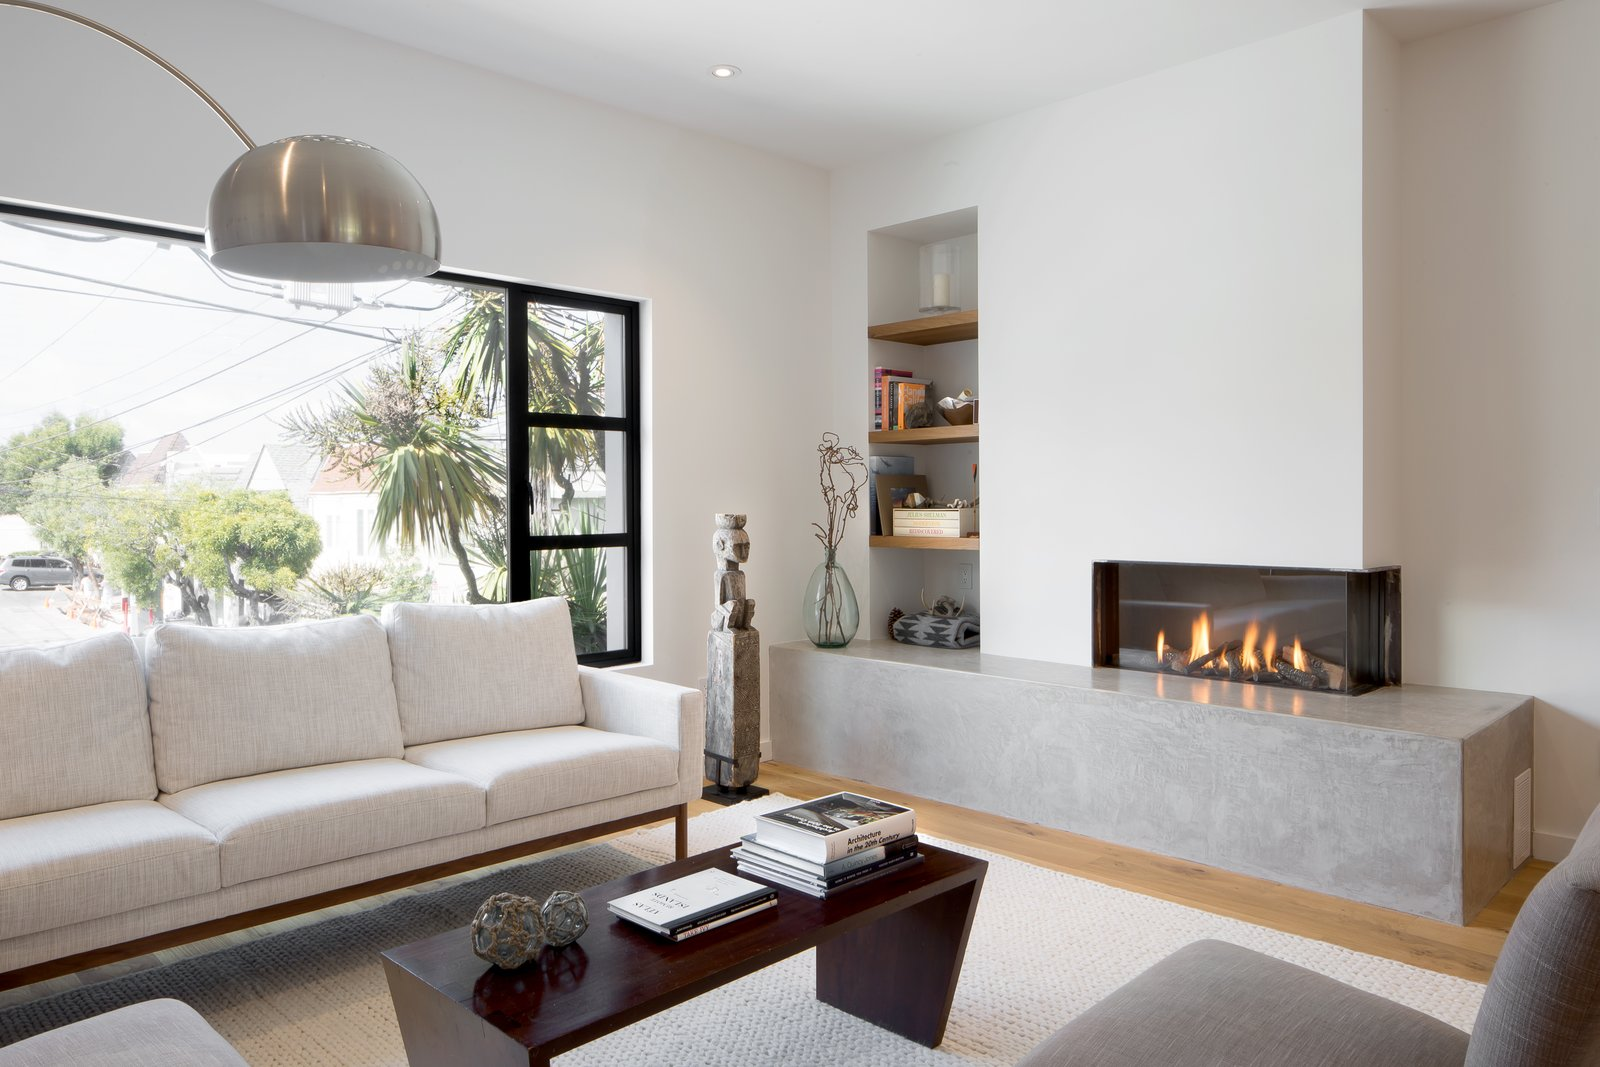 Living room 27th Street - Noe Valley by patrick perez/designpad architecture